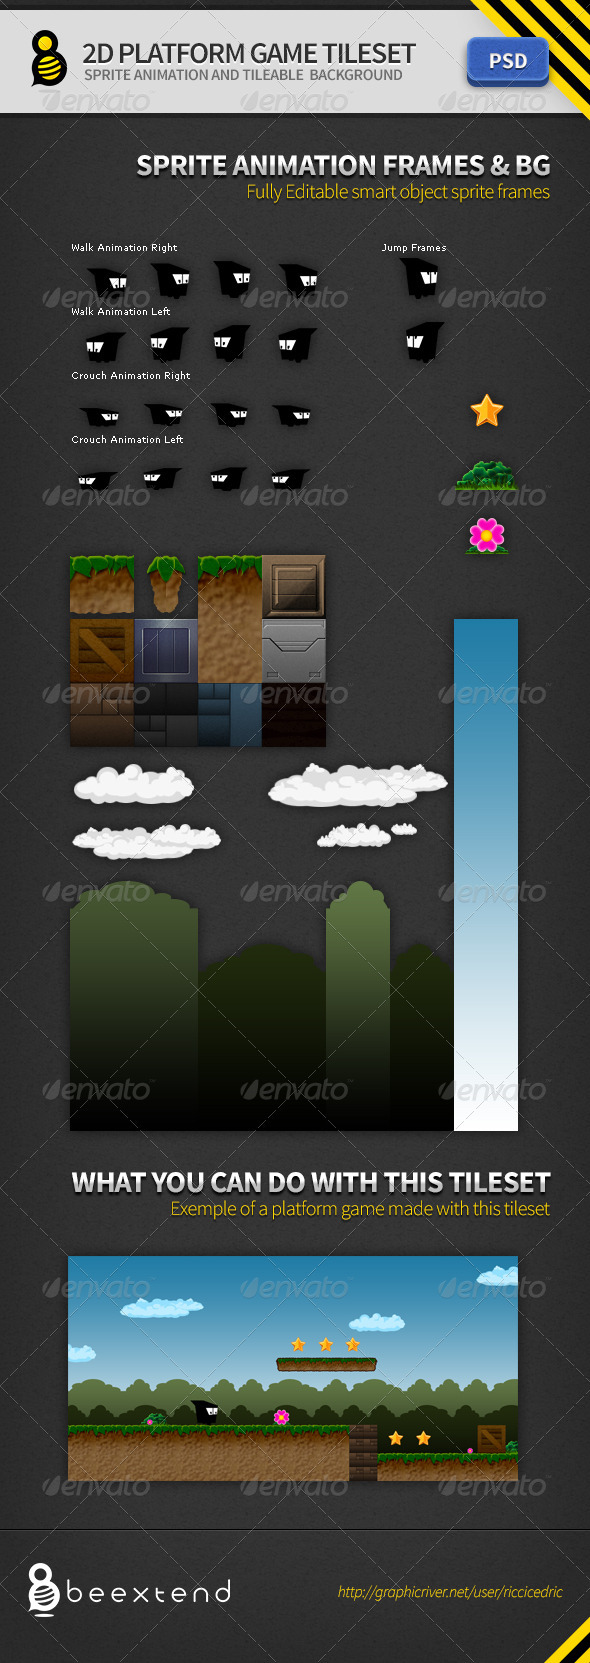 GraphicRiver 2D Platform Game Tileset 3529458